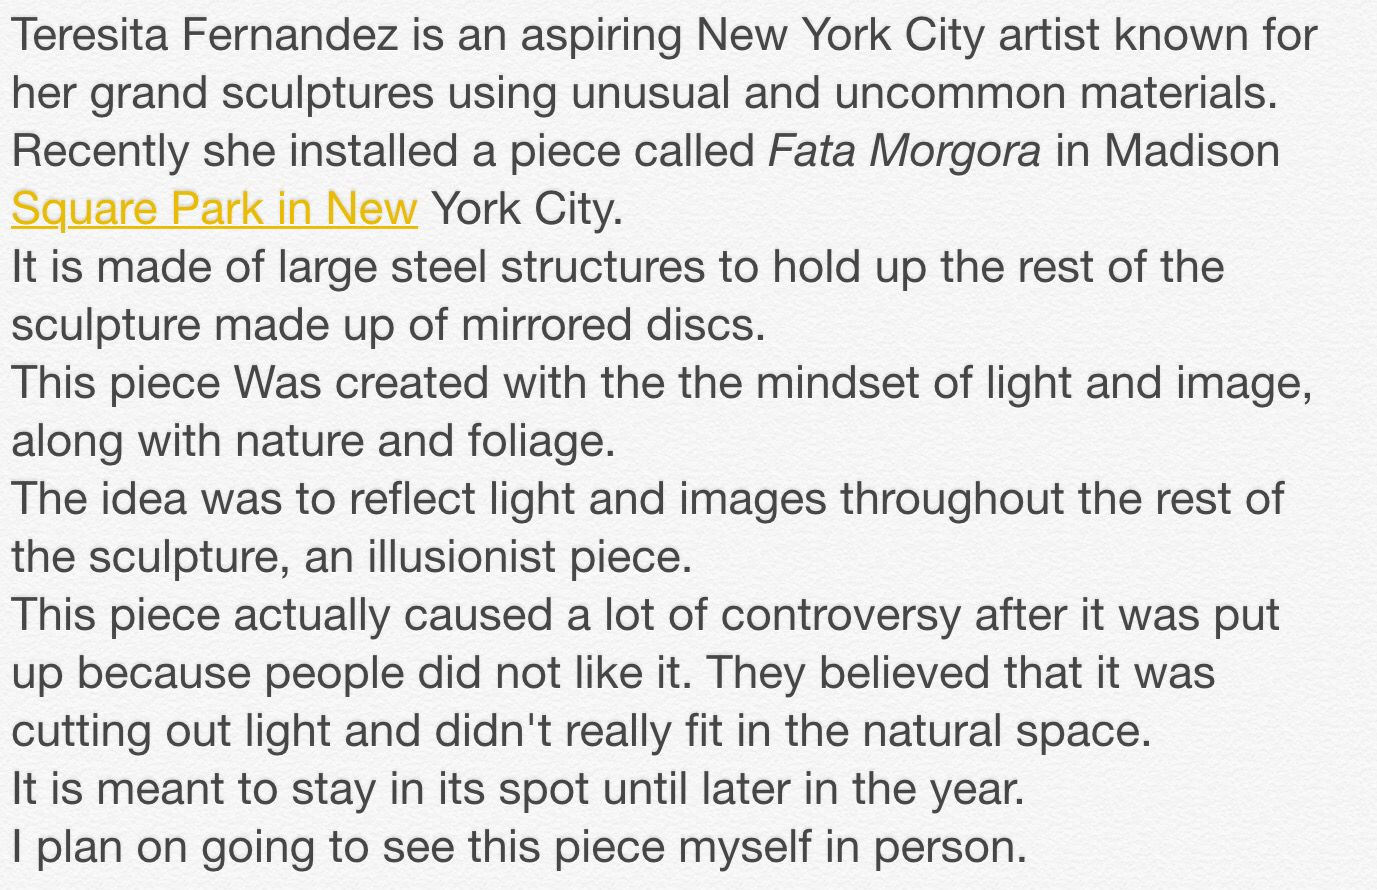 My personal opinion on the piece, Fata Morgora by Teresita Fernandez. Comparative study notes.